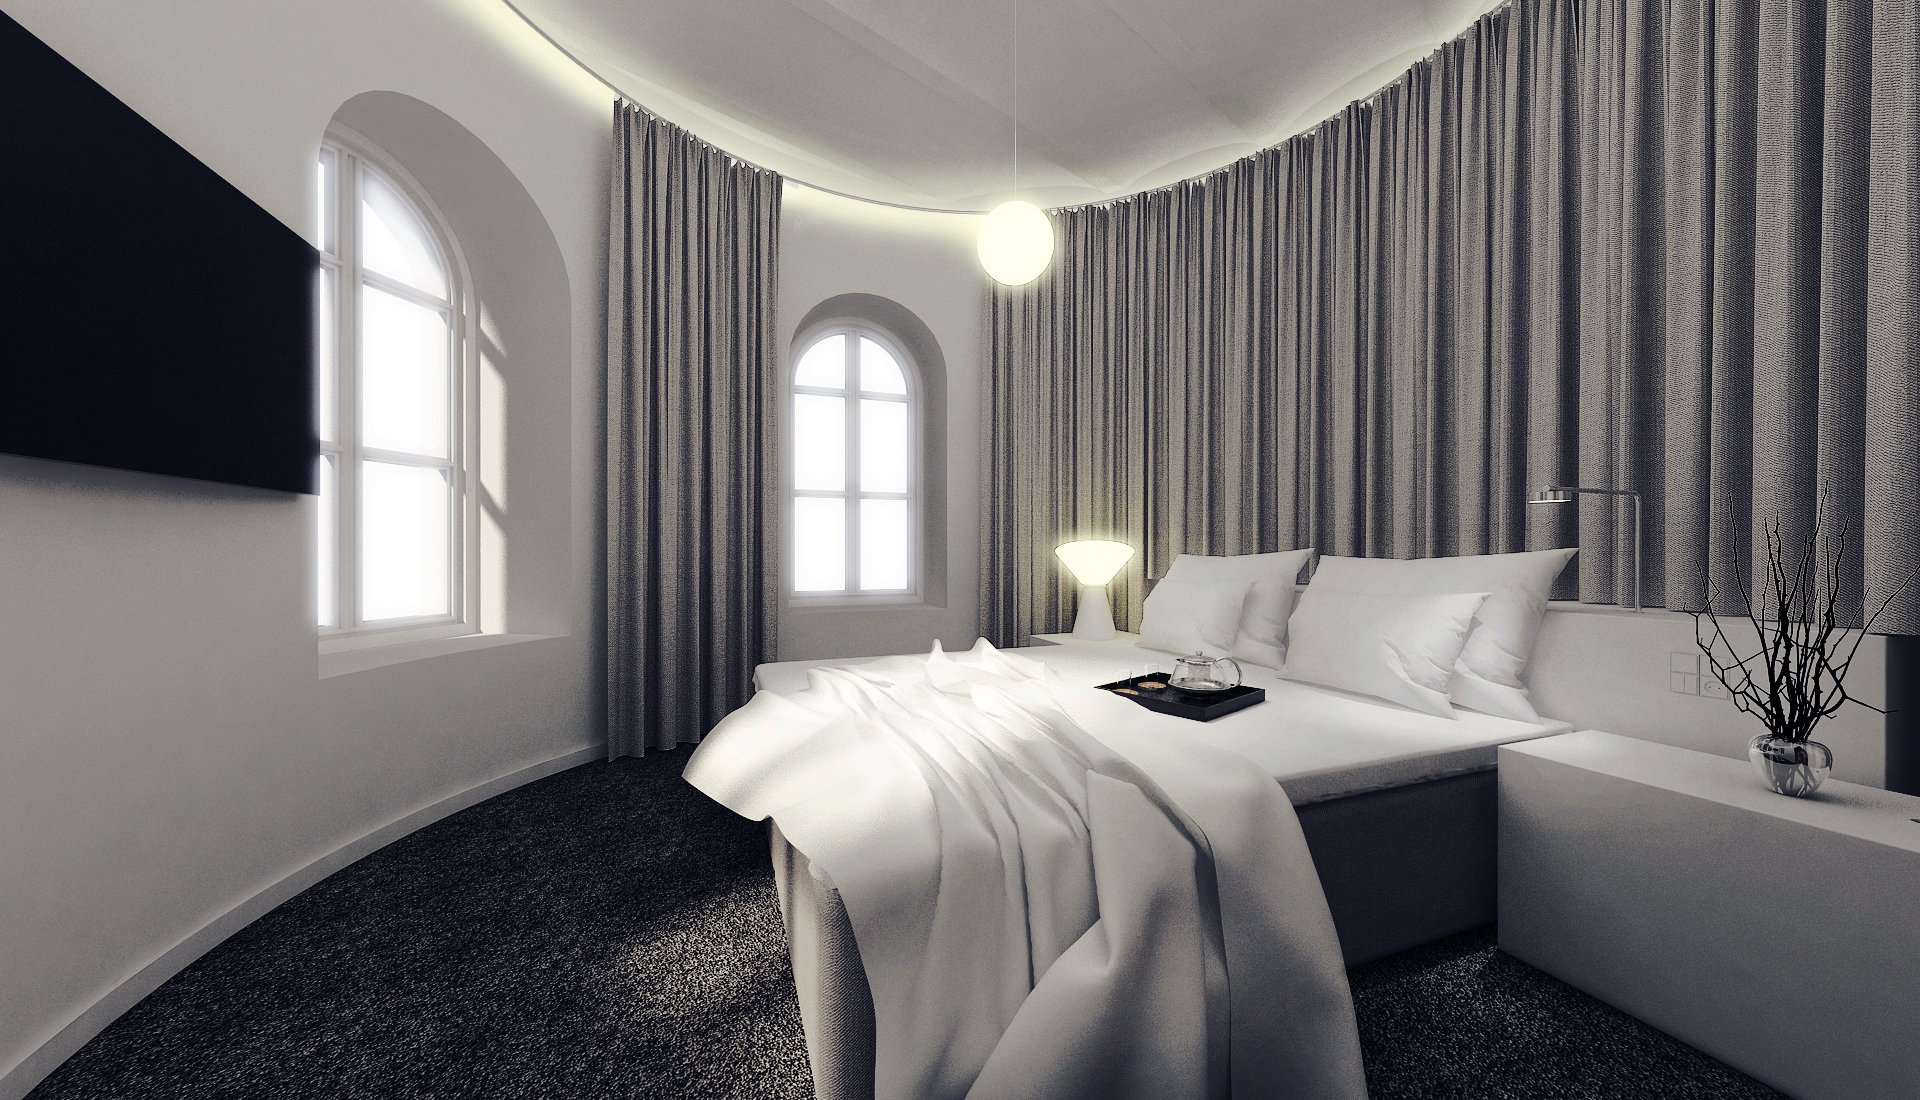 Self-cleaning hotel rooms now a reality - Hotel Business Weekly